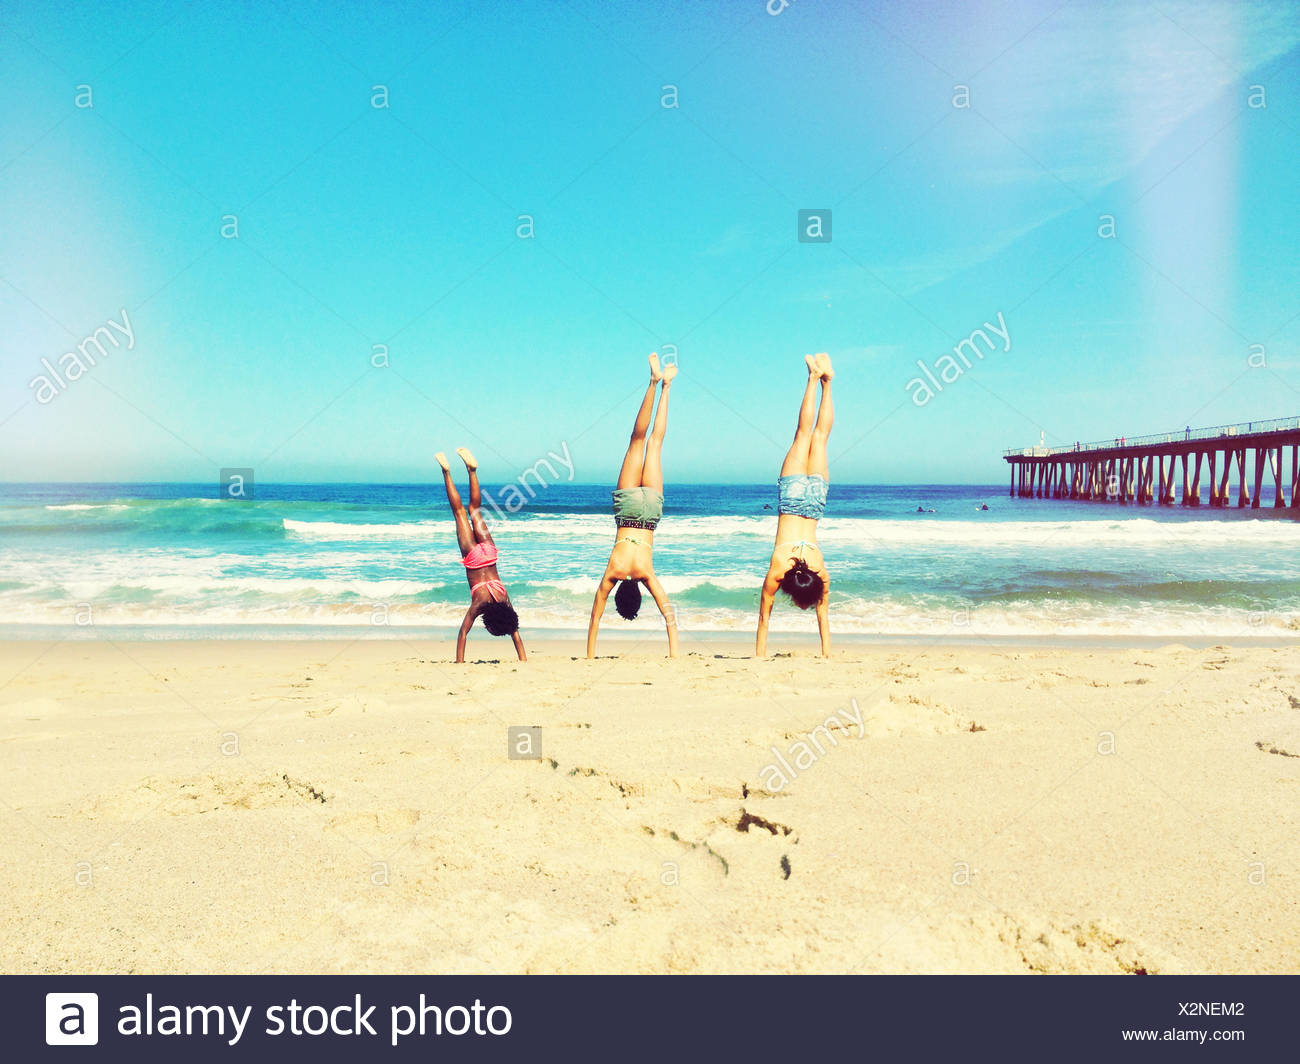 Mother, father and daughter doing handstand on beach - Stock Image